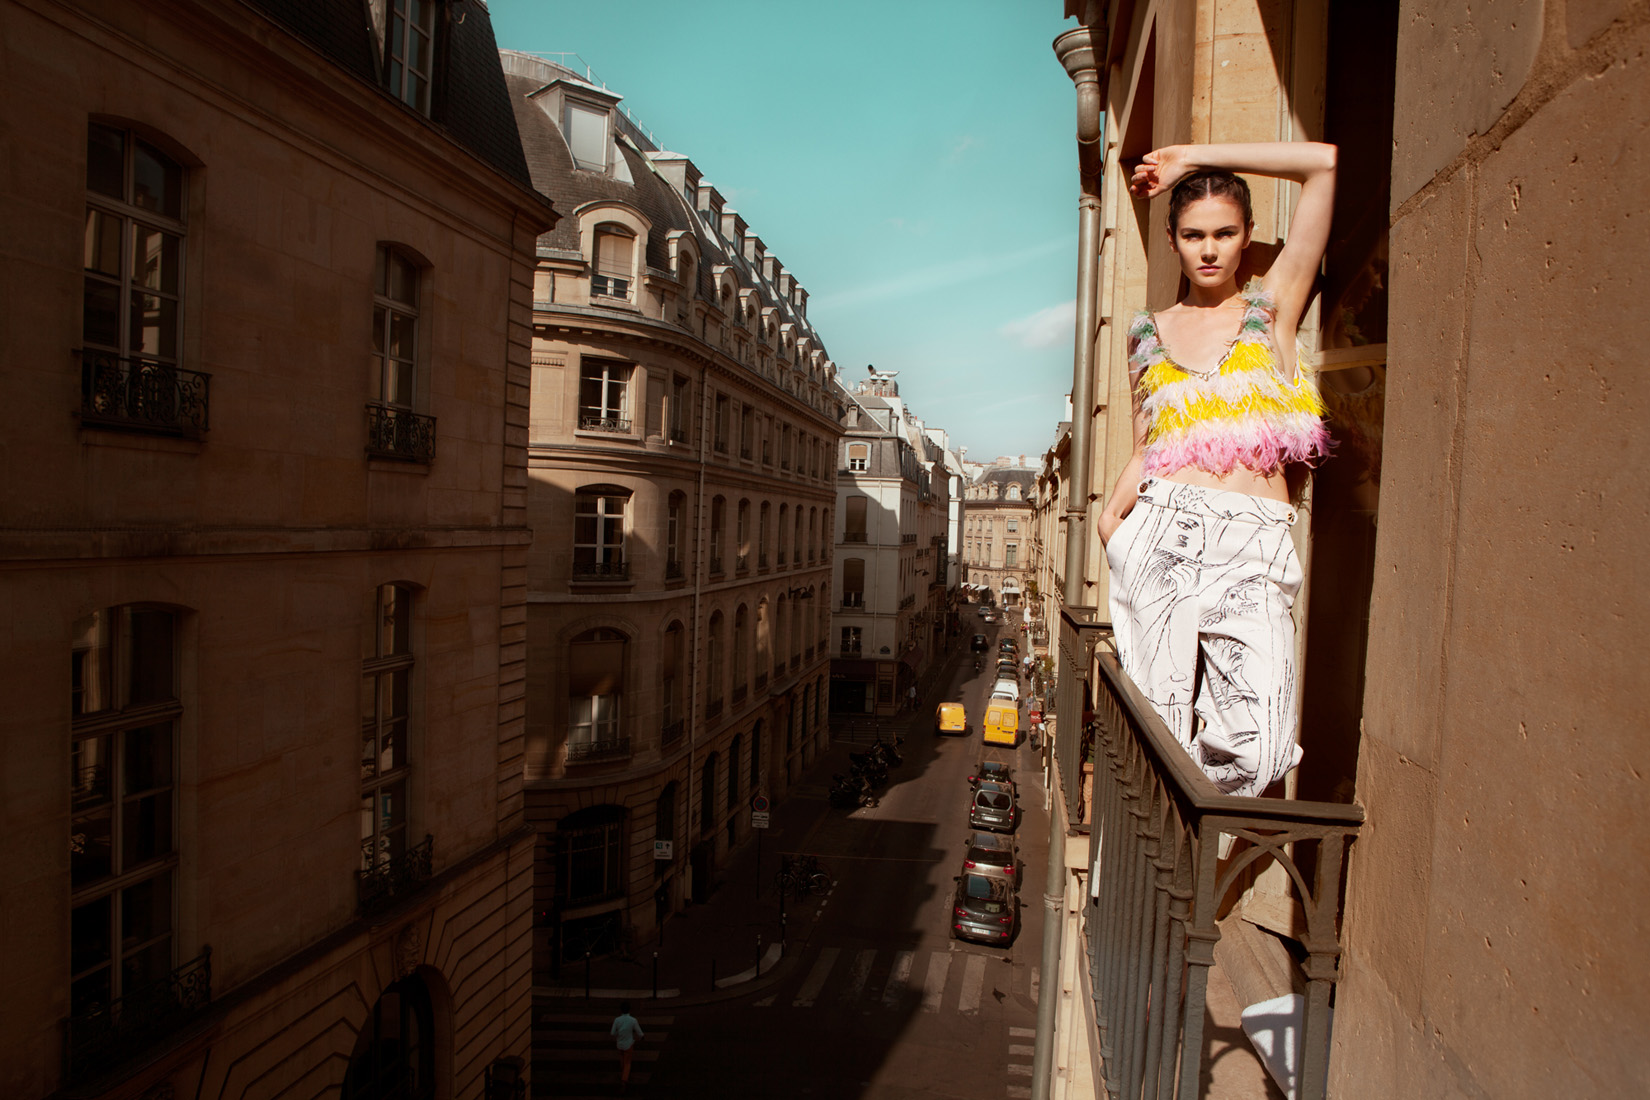 Paris Editorial: Out of the Bleu by Amaris Granado